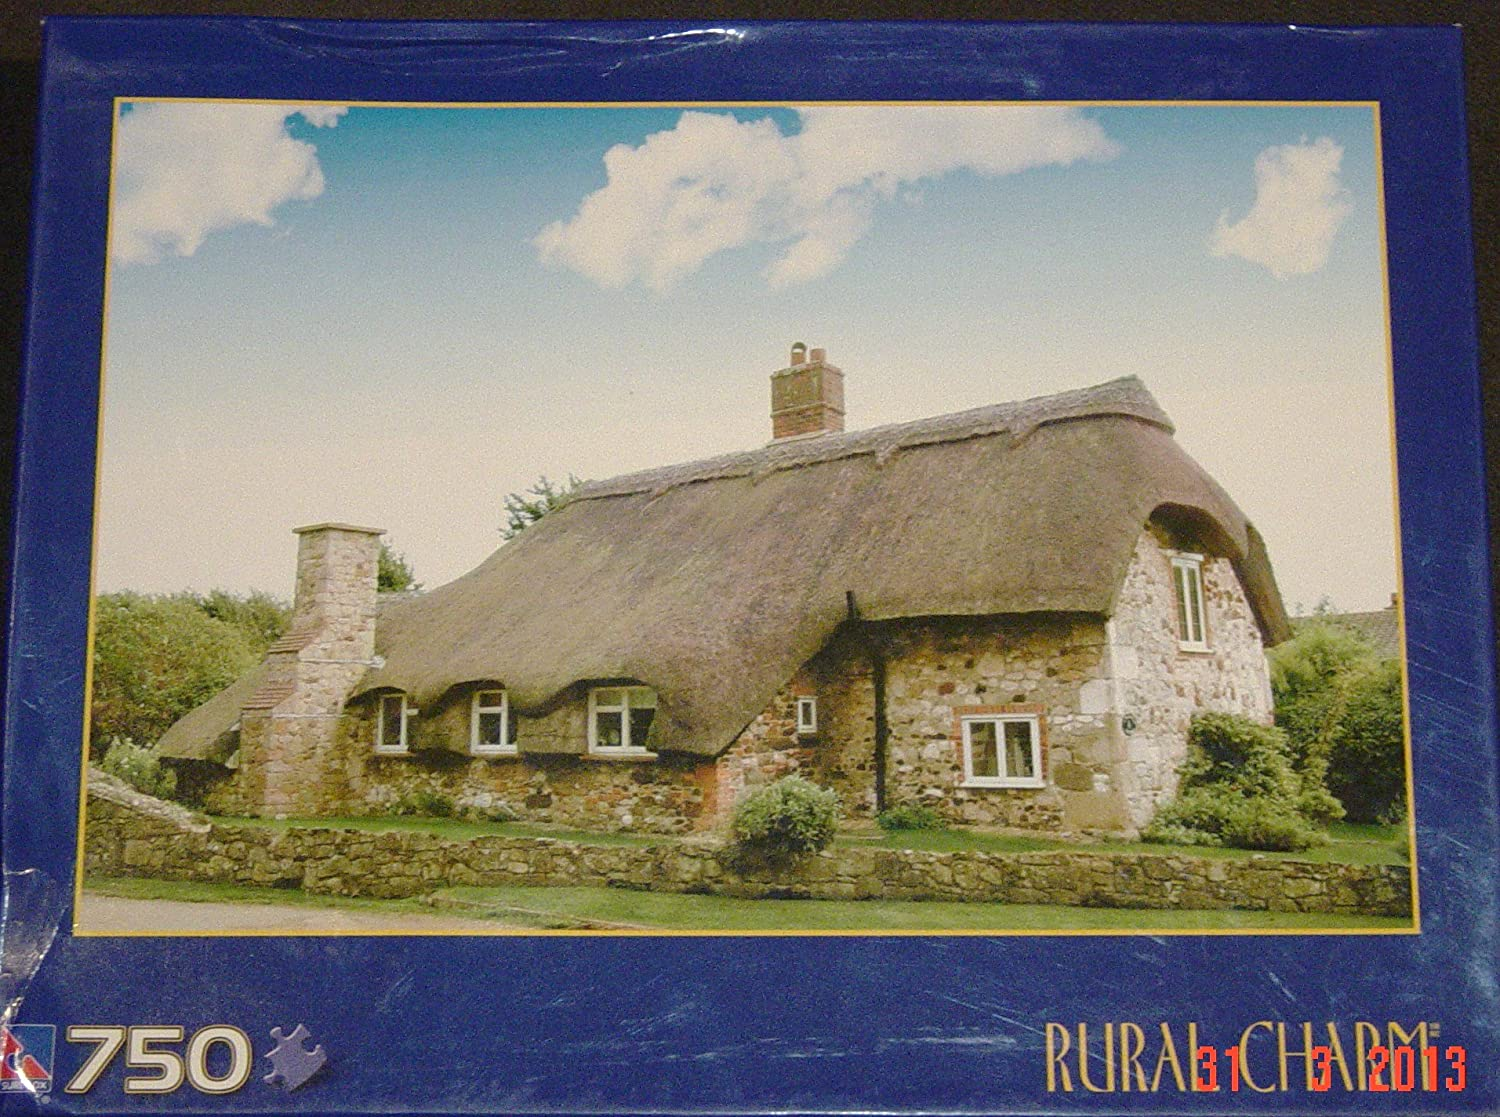 Rural Charm 750 Piece Puzzle -- Thatched Cottage, UK by Rural Charm